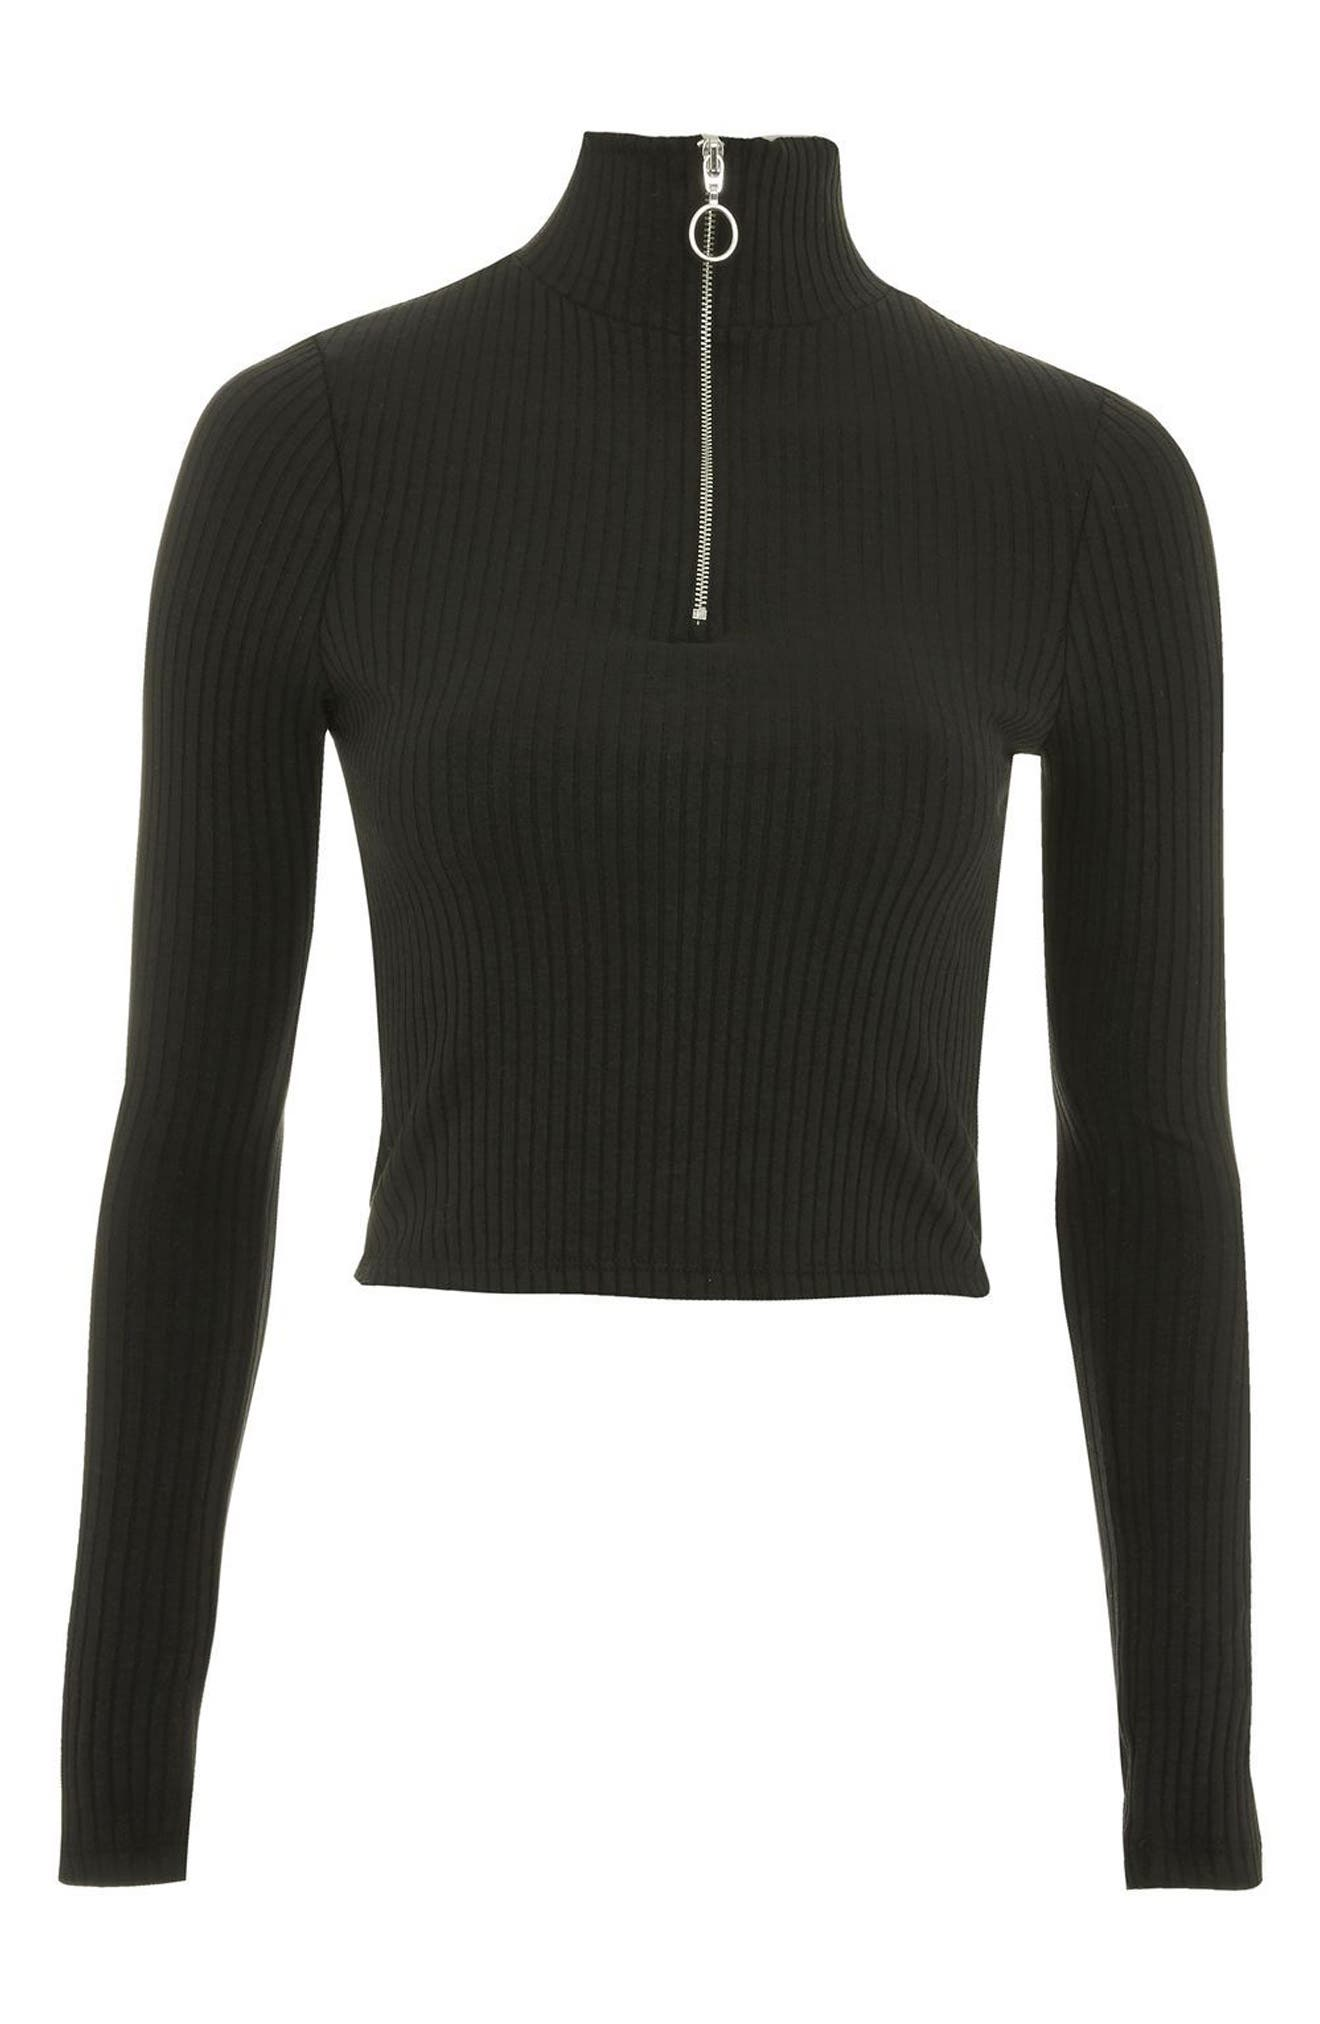 Zip Rib Knit Crop Top,                             Alternate thumbnail 4, color,                             Black